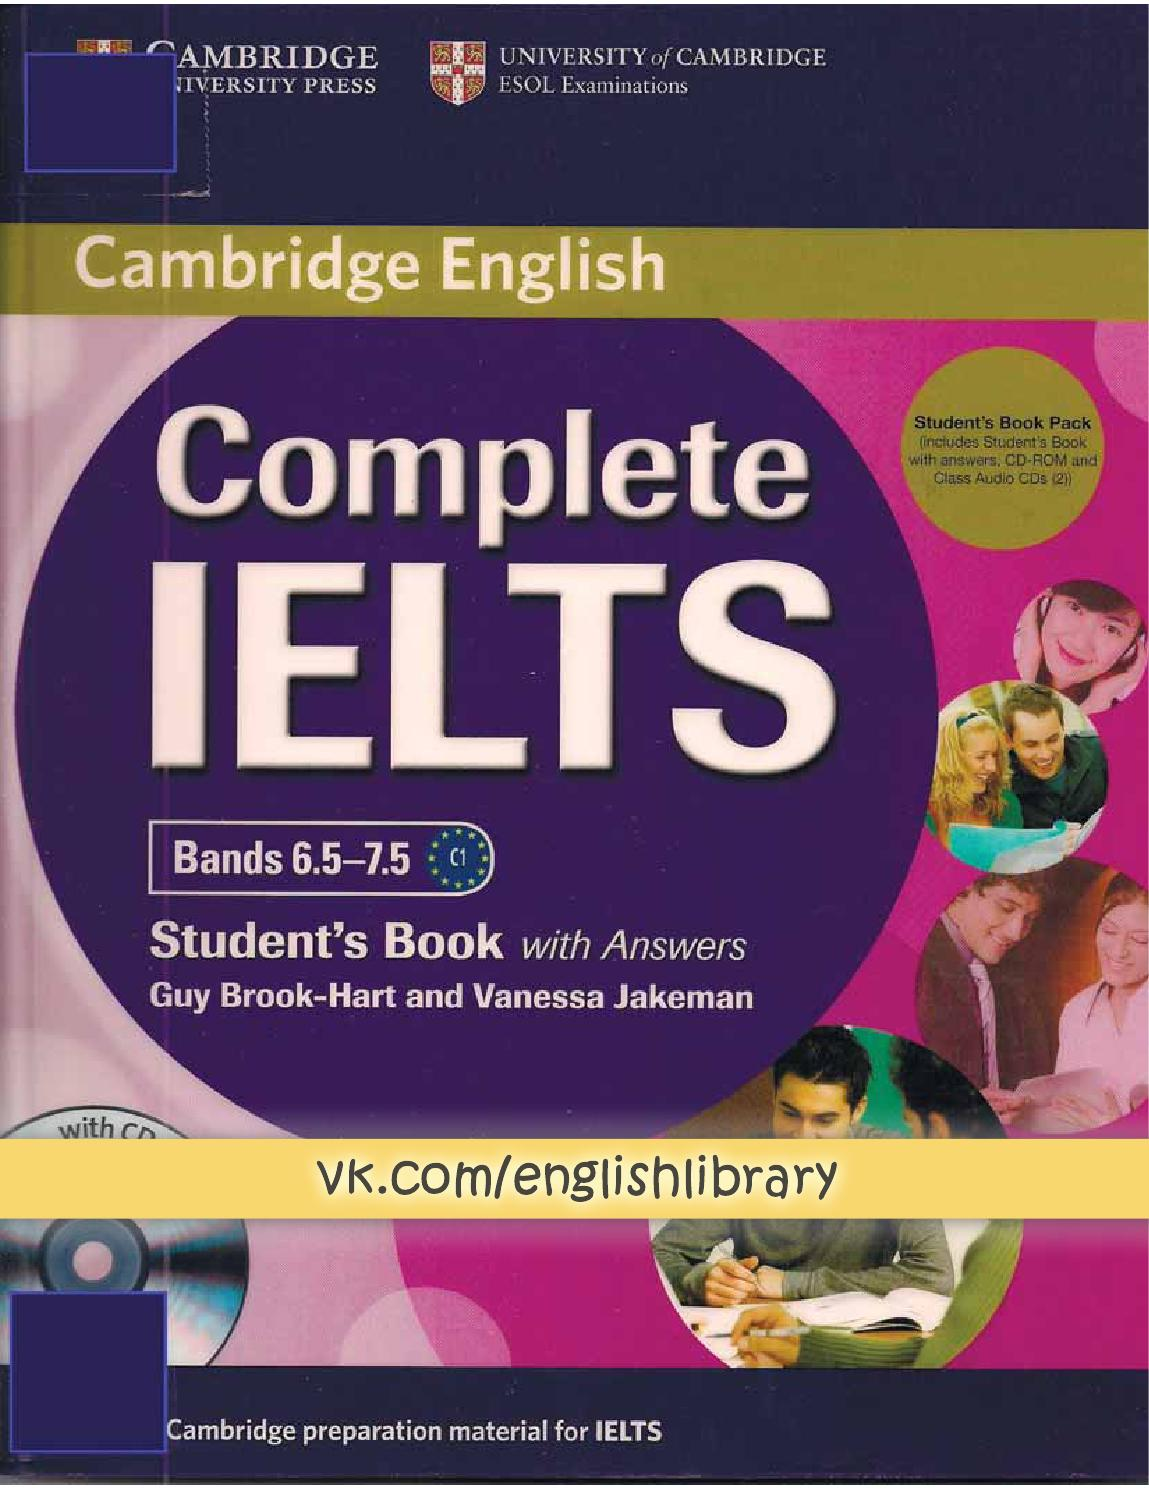 Complete ielts 75 sb by issuu_fang - issuu